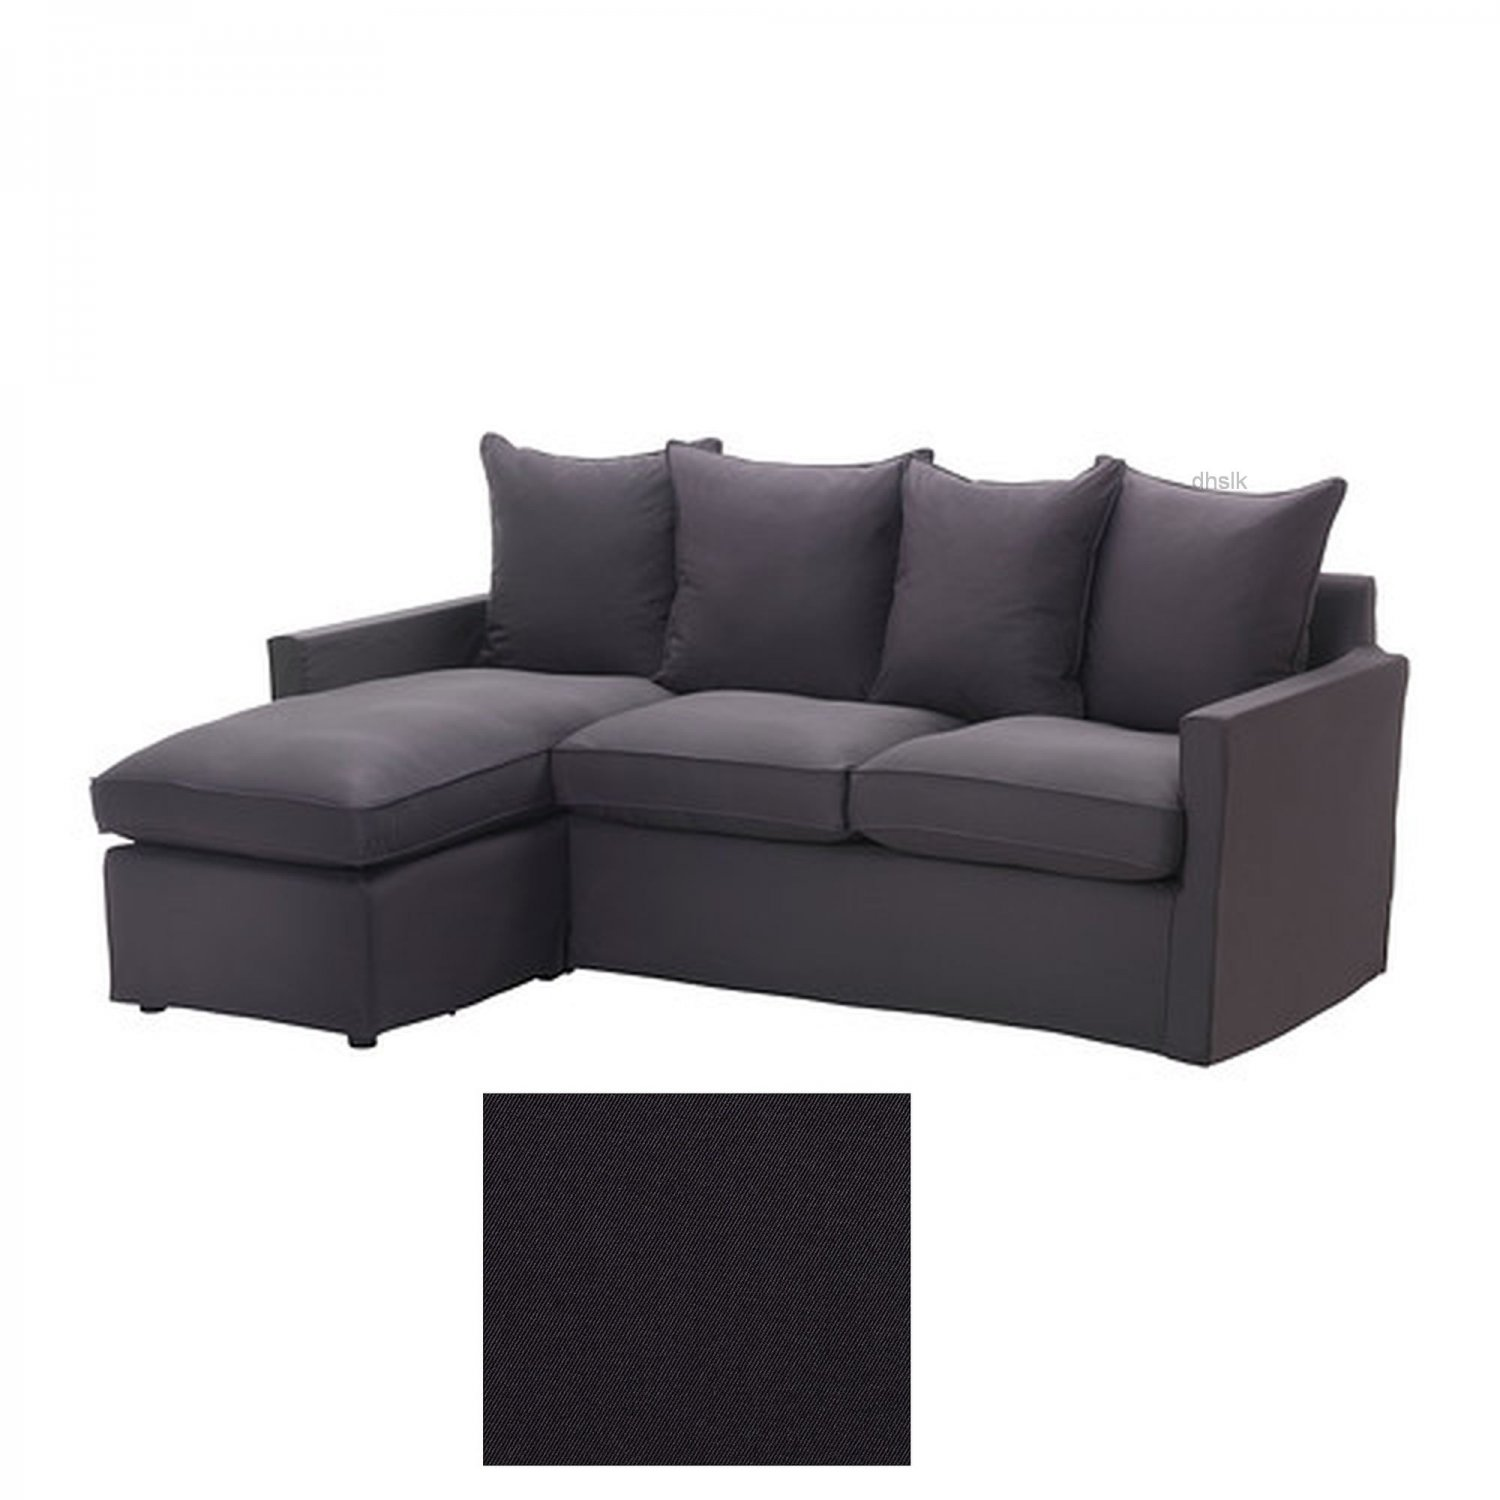 Ikea harnosand 2 seat loveseat sofa with chaise slipcover for Chaise couch cover